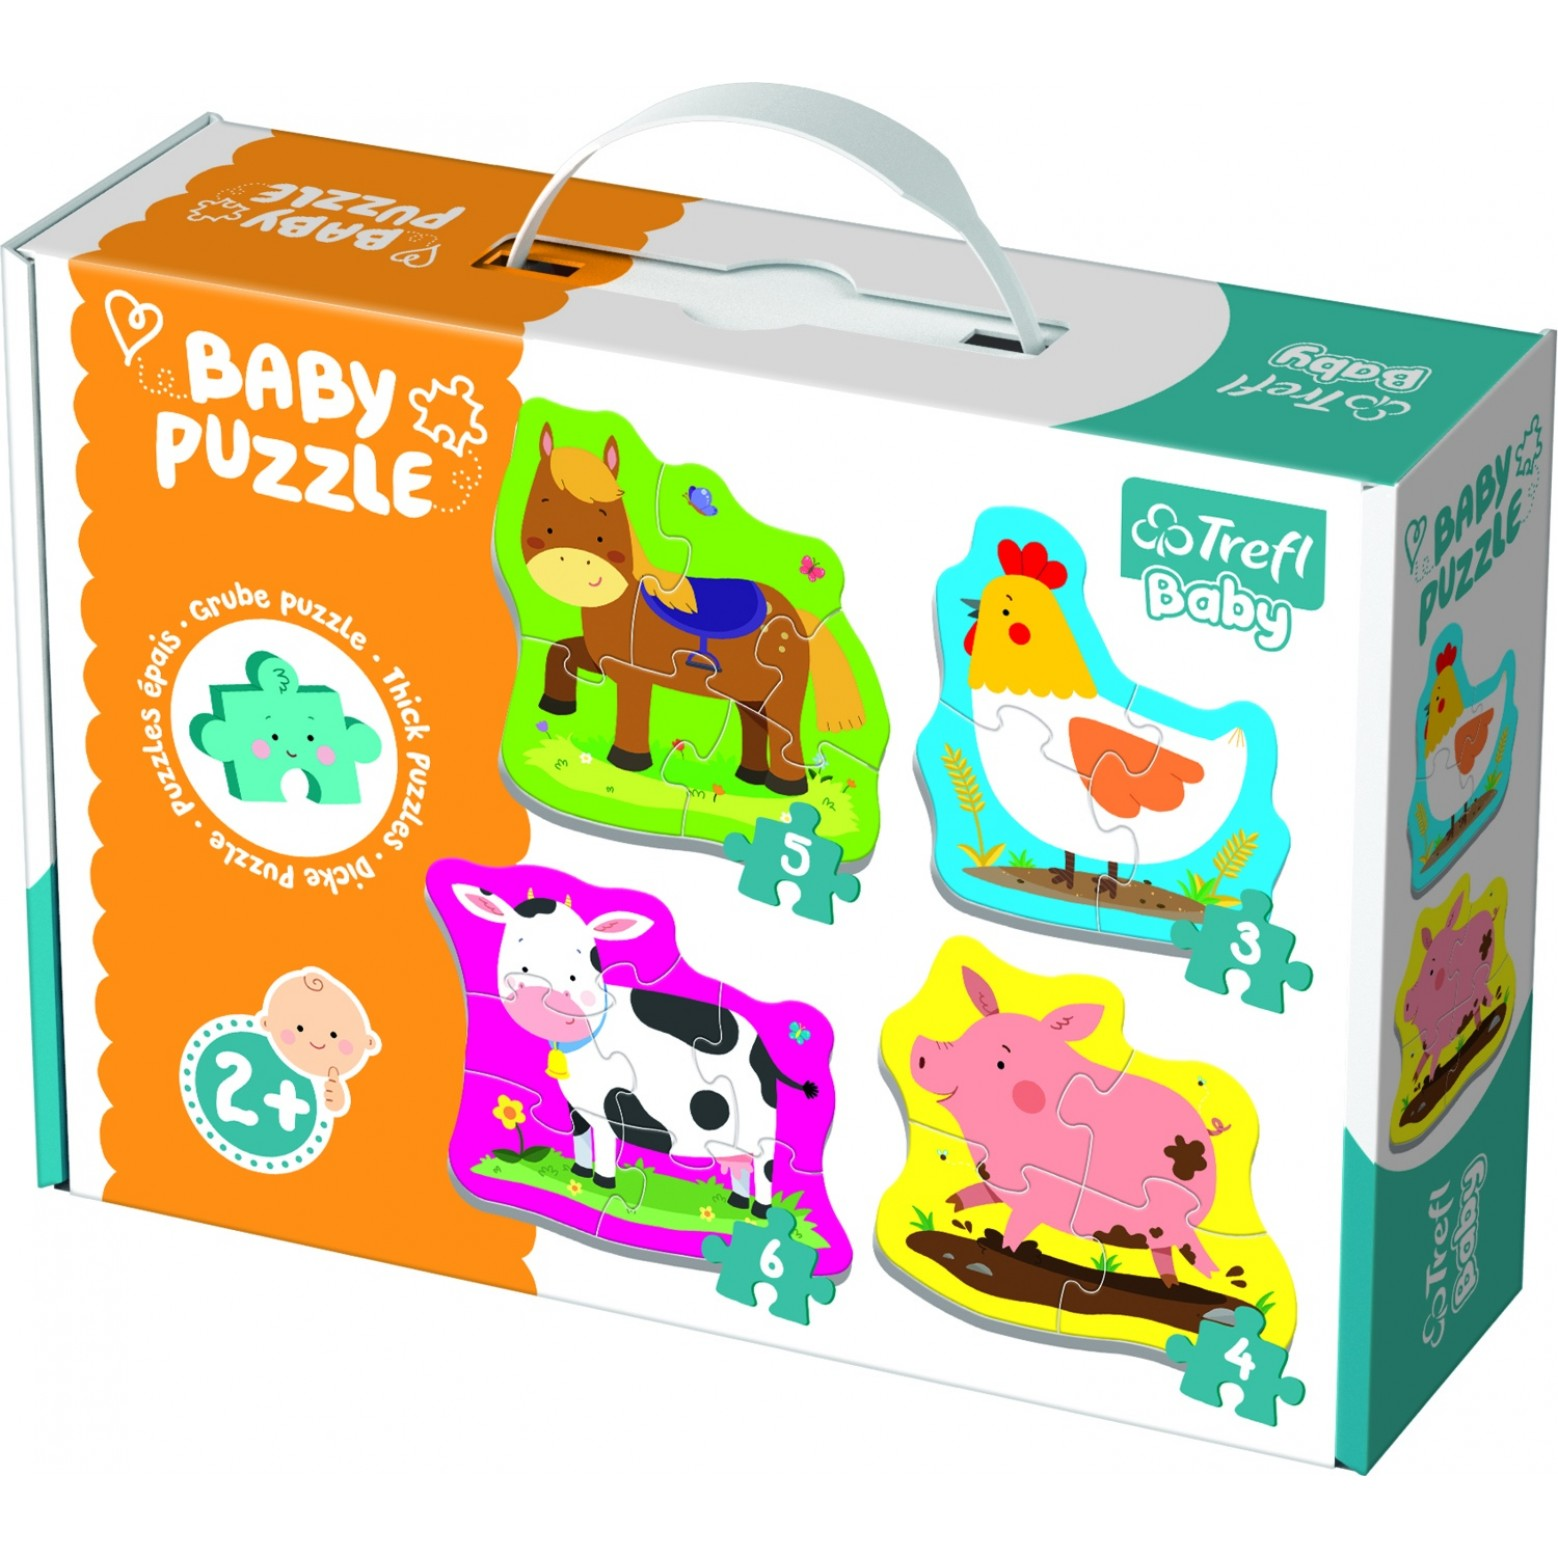 Baby puzzel 4 in 1 2+